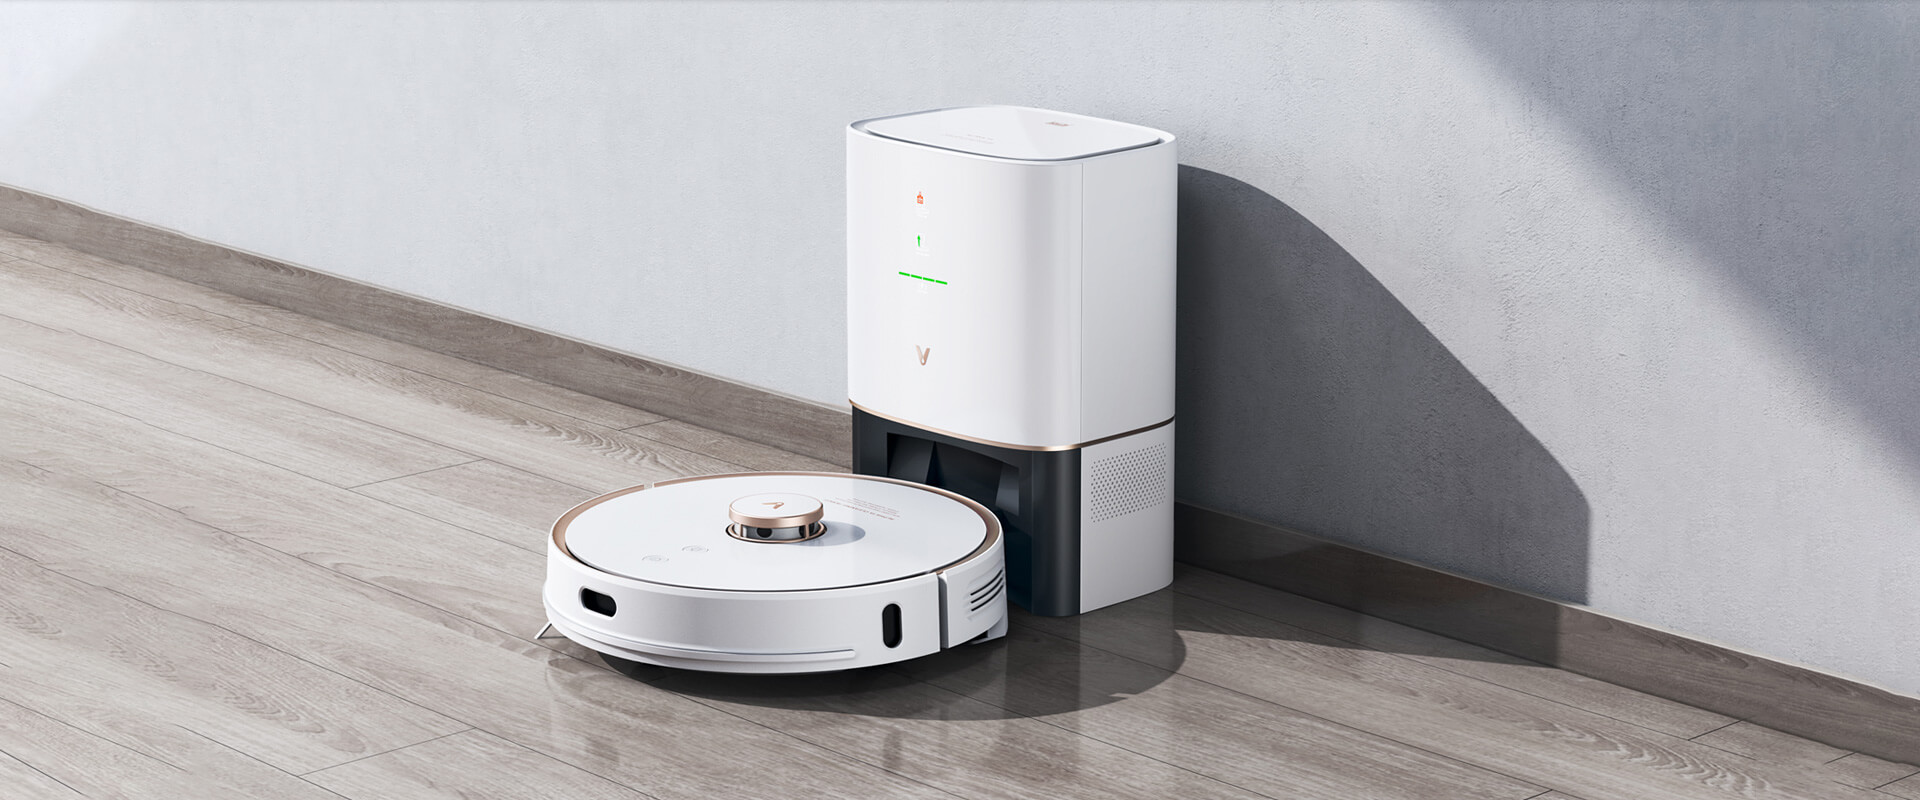 viomi alpha s9 automatic vacuum With Auto-Dumping Cleaning